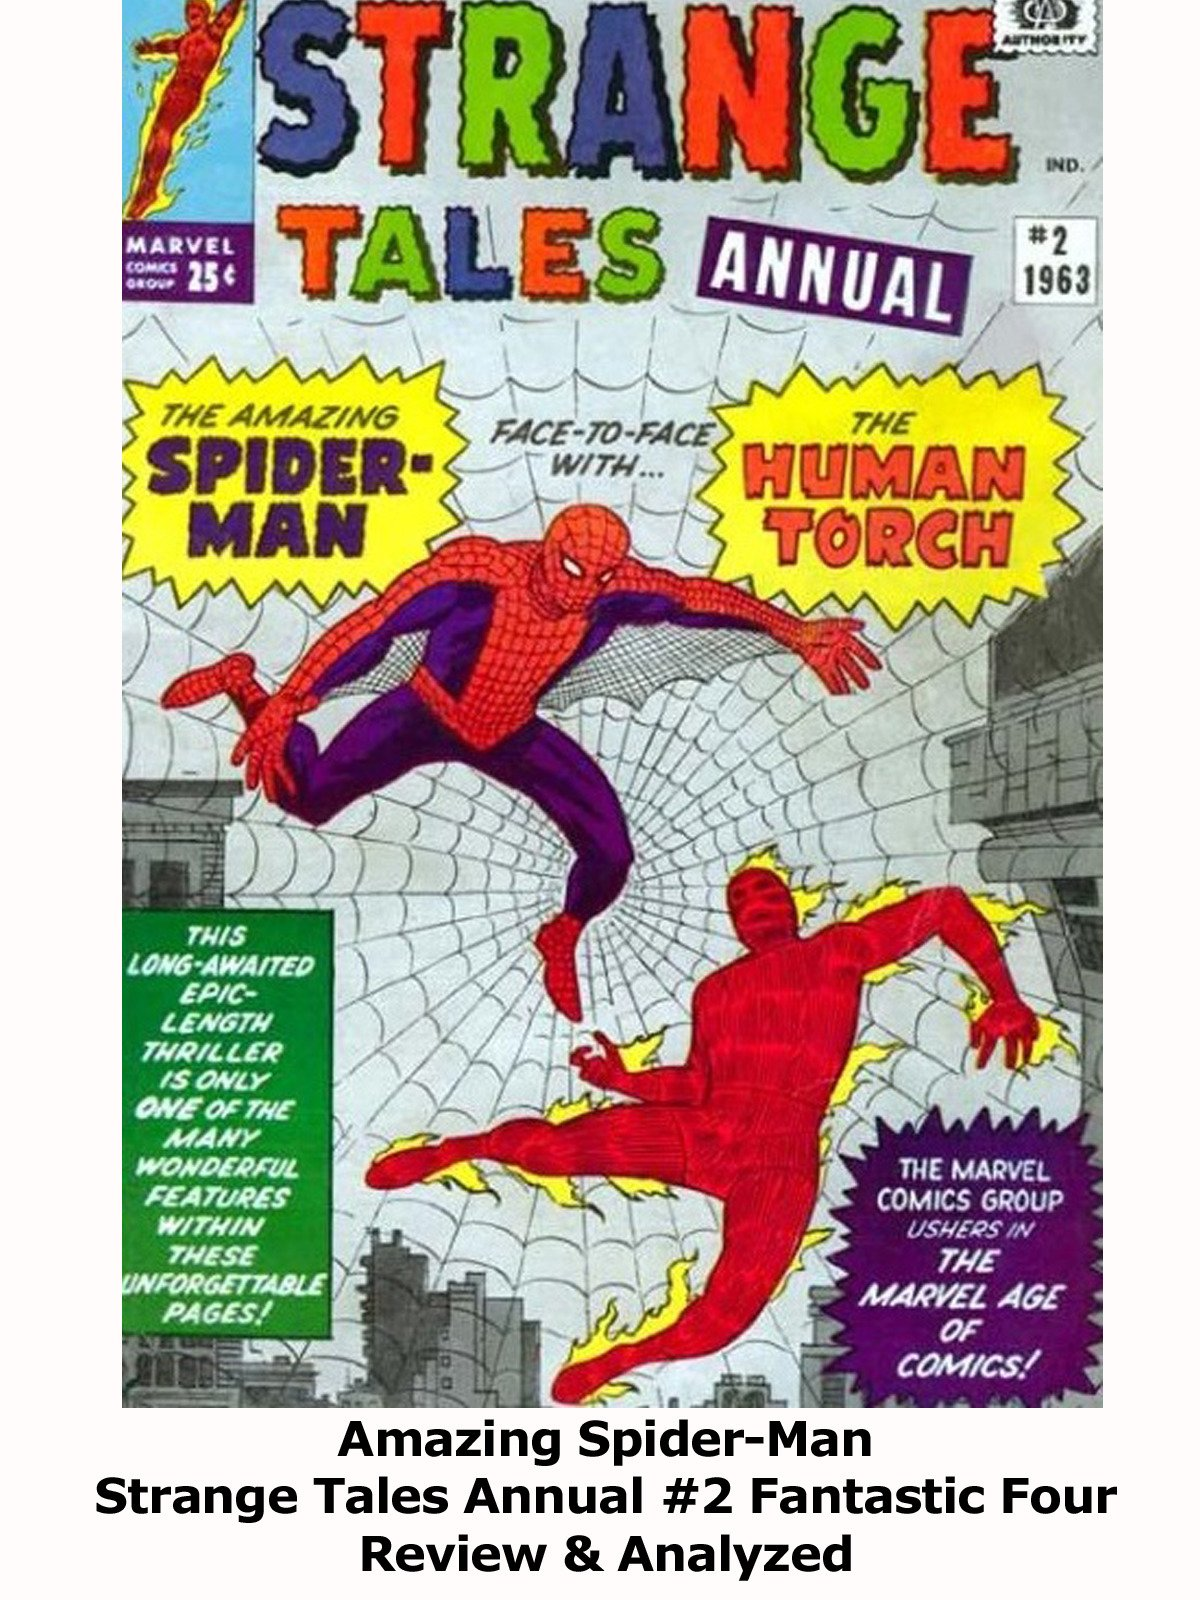 Review: Amazing Spider-Man Strange Tales Annual #2 Fantastic Four